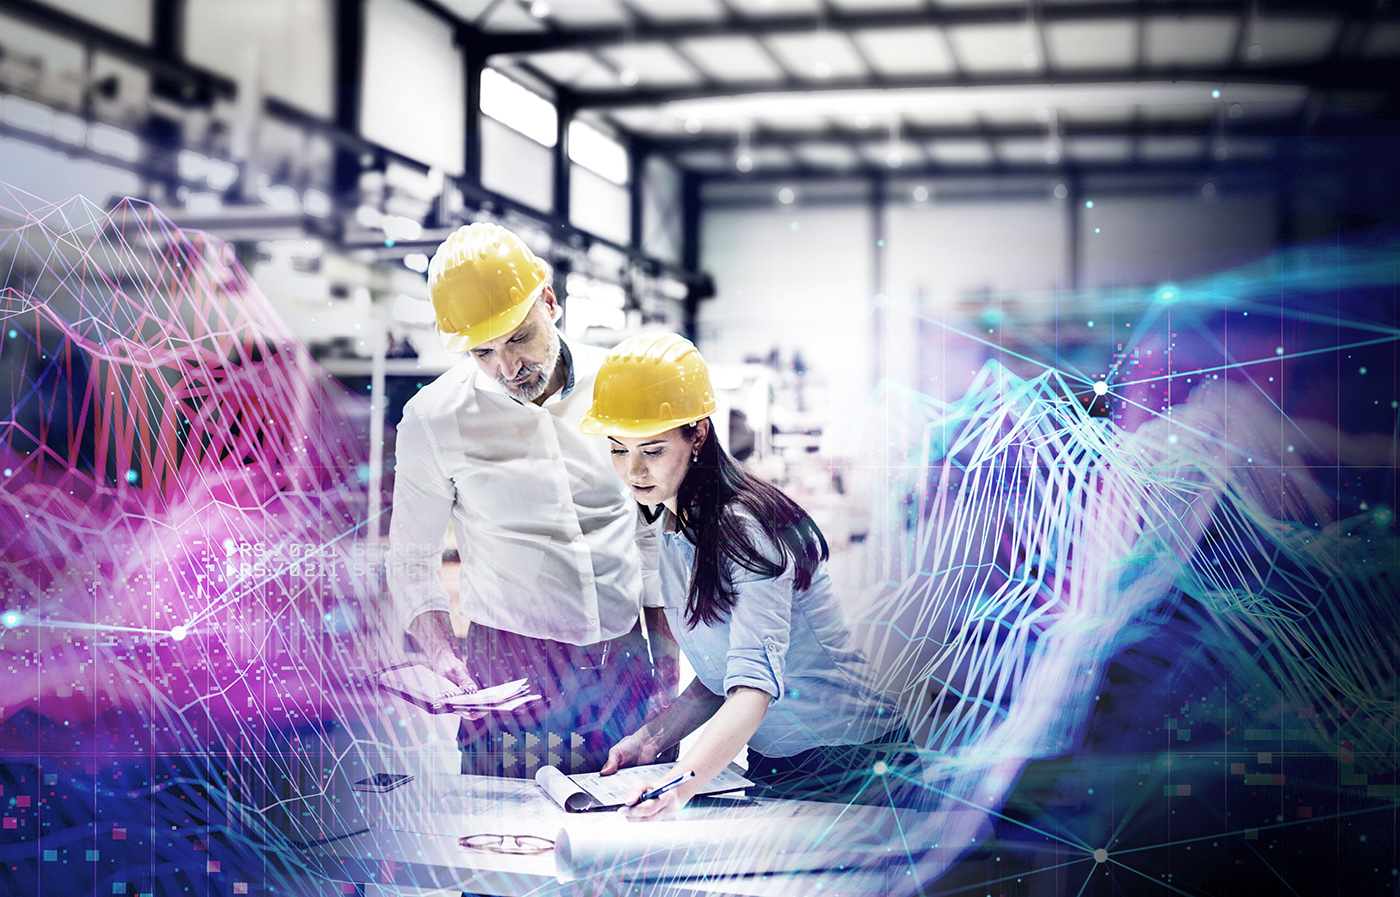 Main visual : Three ways for manufacturers to make the smart factory a reality